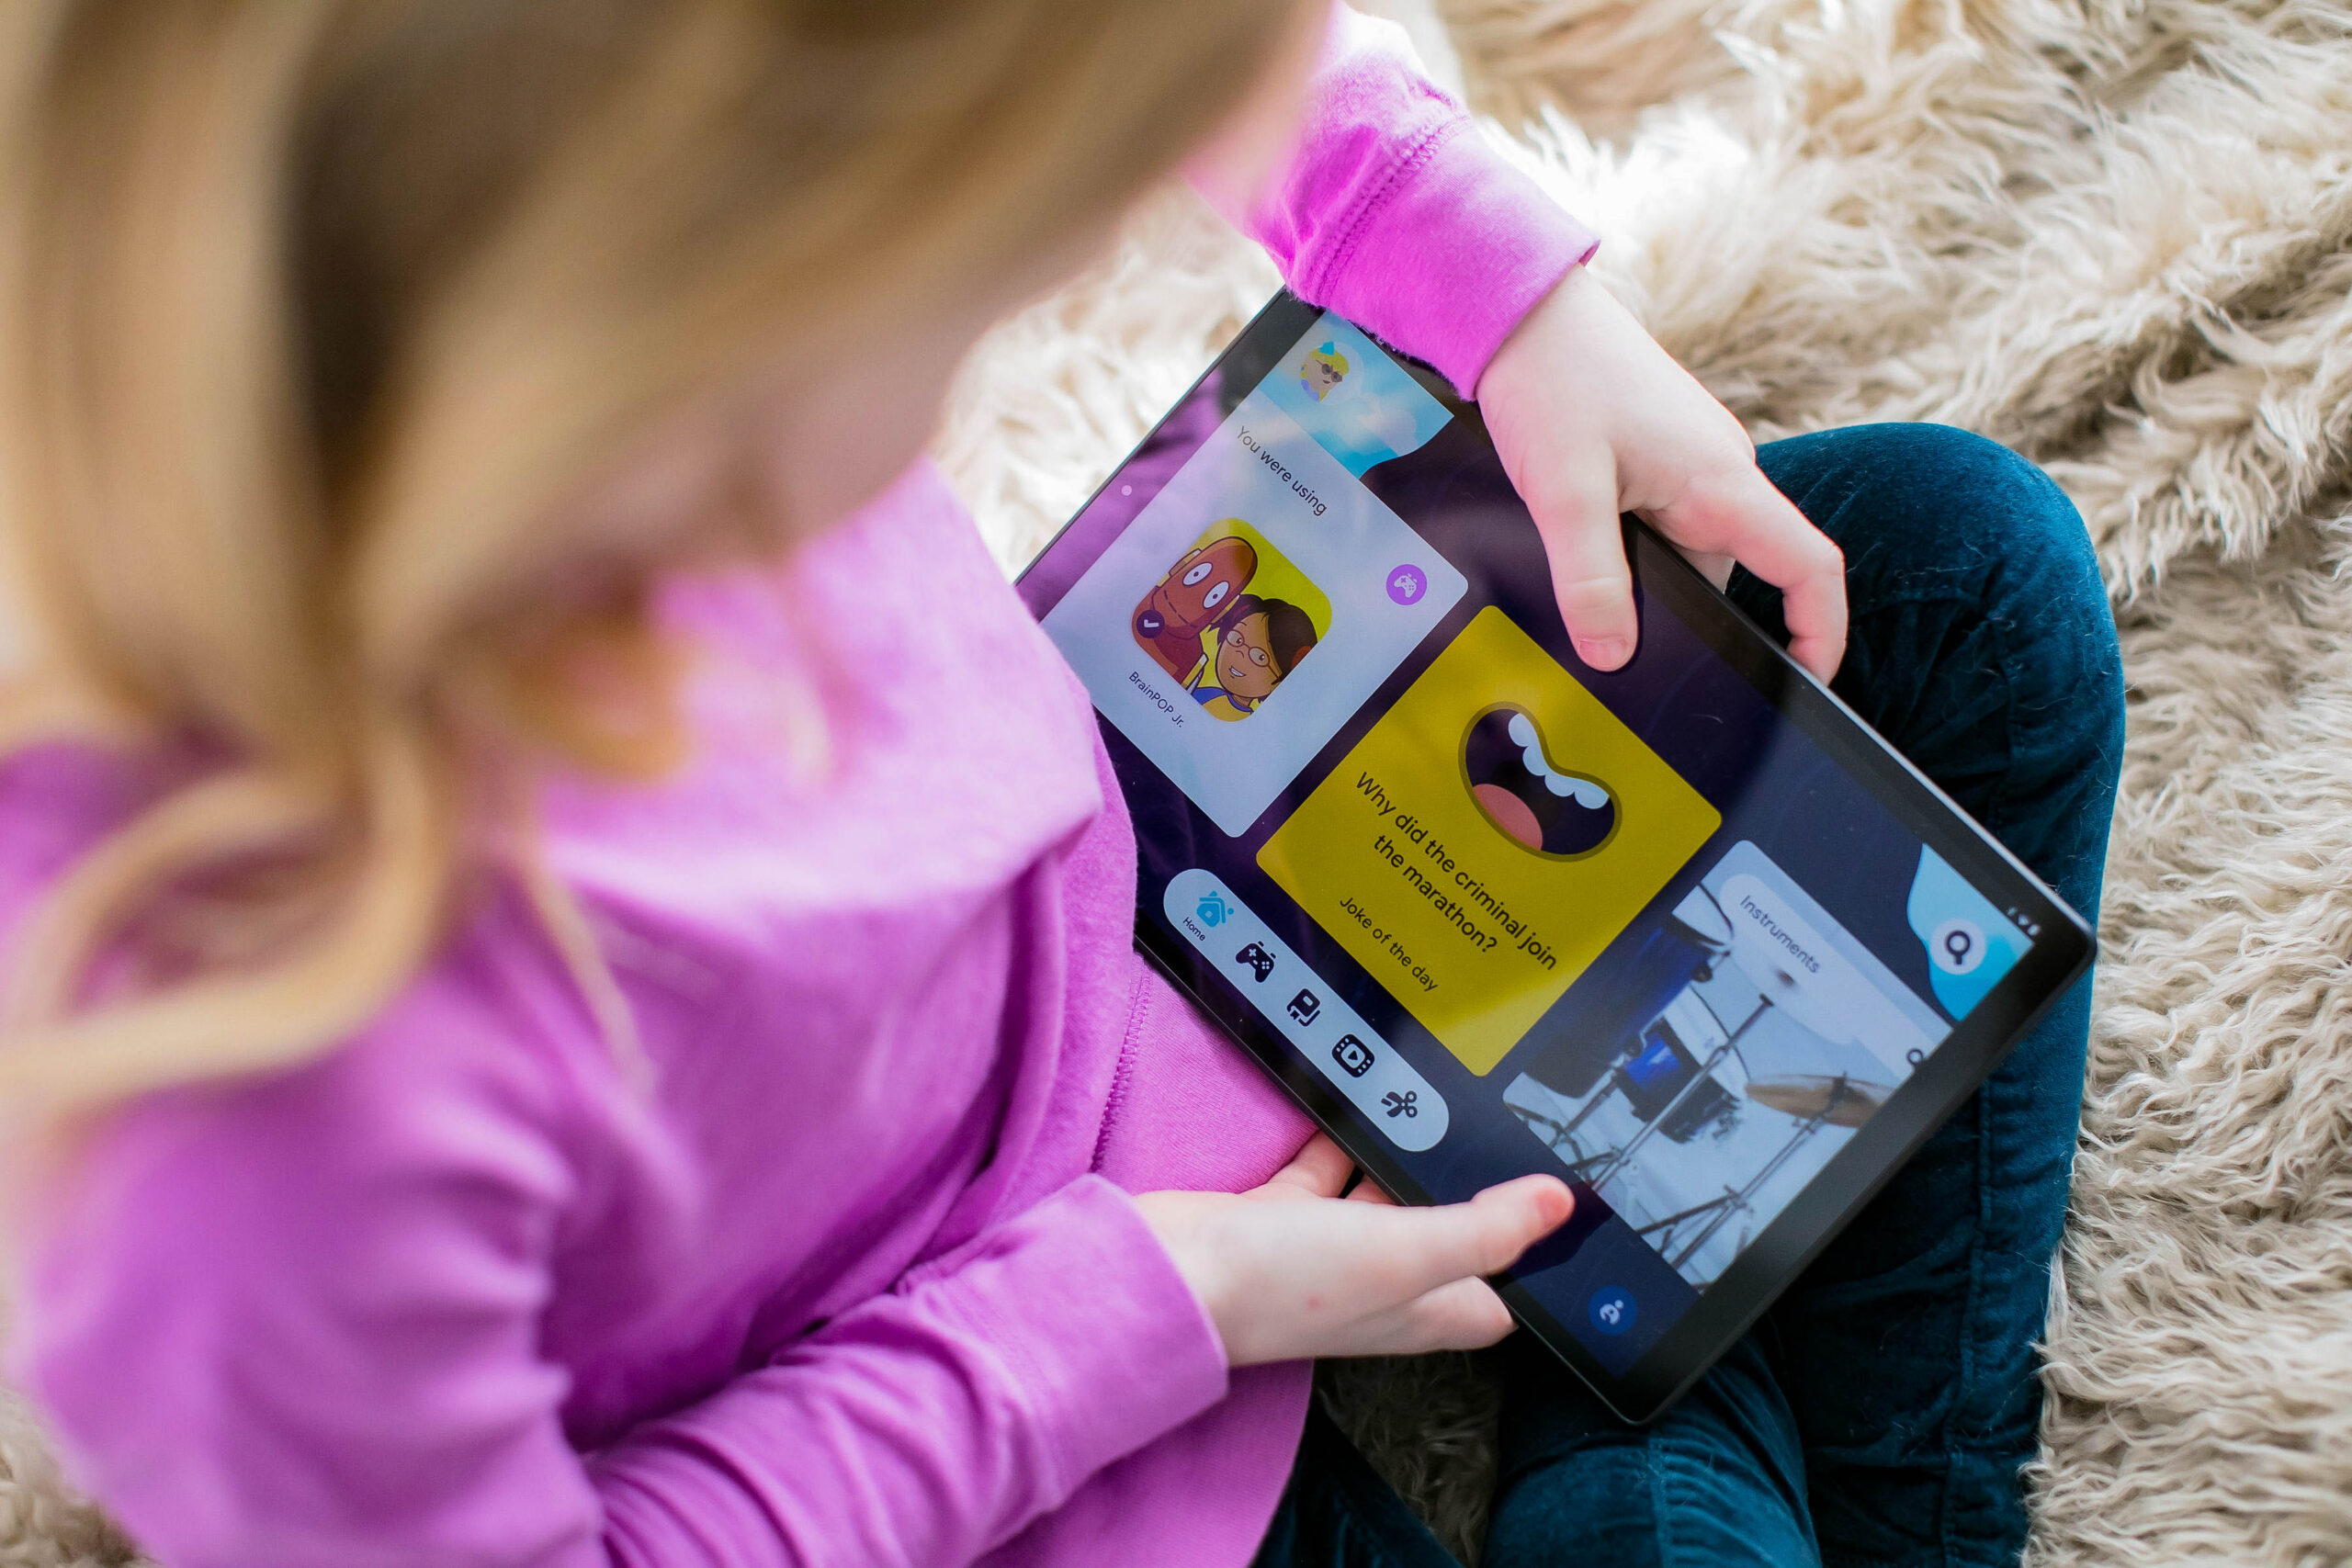 Digging into ways to keep your kids entertained and learning? These are tips for helping kids find great content (specifically for elementary school aged children) from a teacher, behavior specialist and mom!